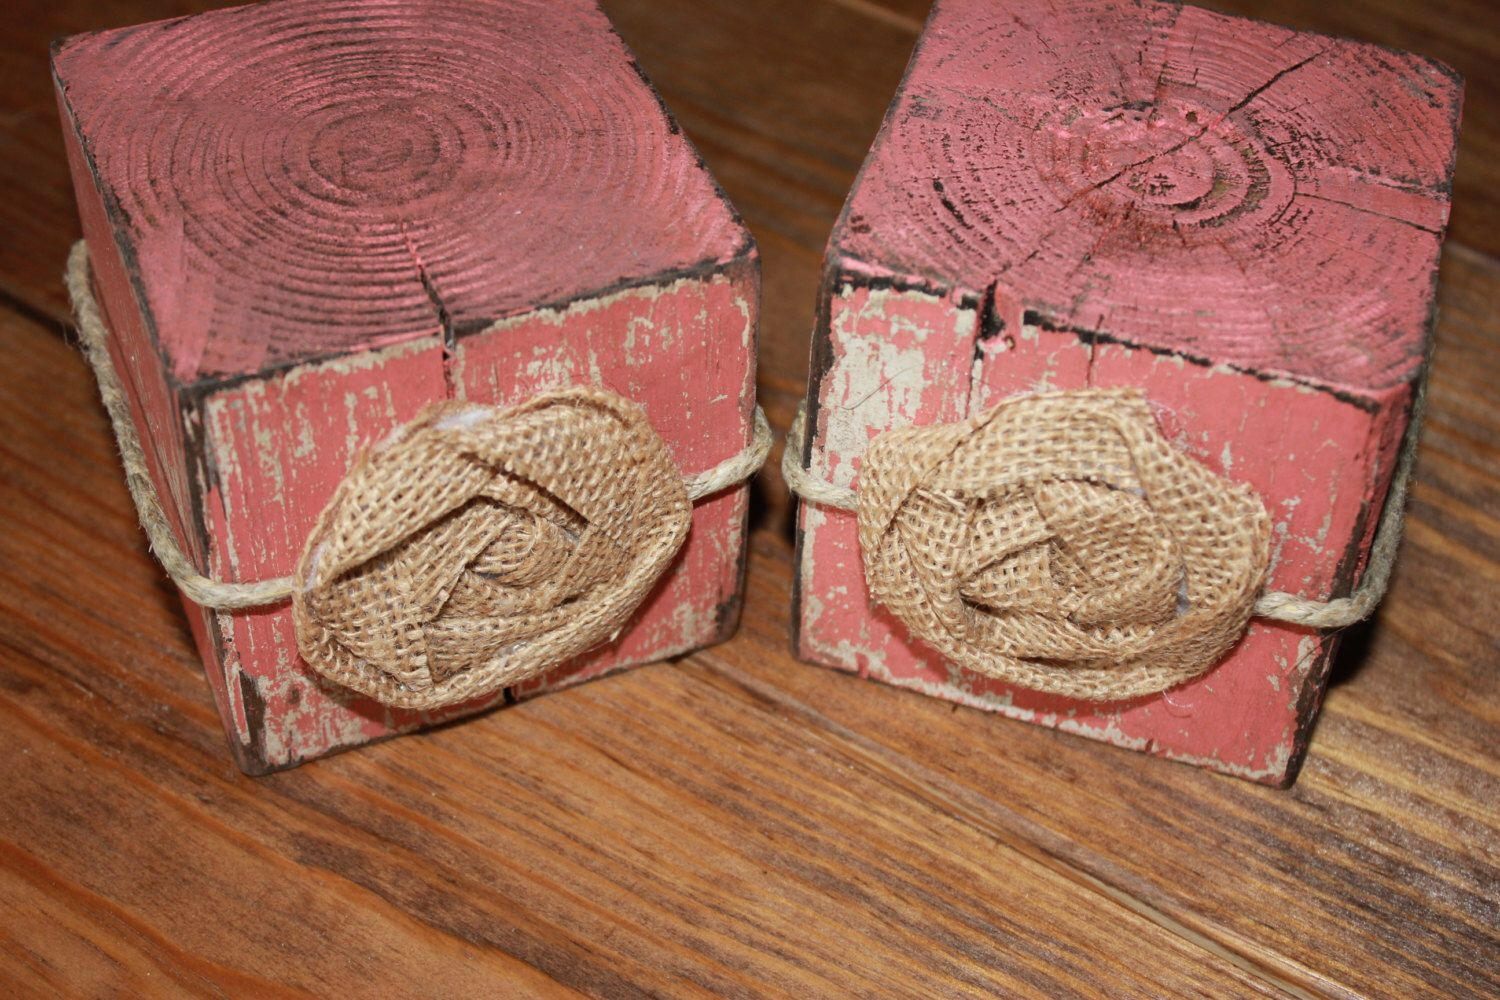 Set of 2 shabby chic & rustic 4x4 blocks. Hand-painted, distressed, and glazed blocks, wrapped in twine and adorned with burlap rosettes. door PrettyandRustic op Etsy https://www.etsy.com/nl/listing/209759952/set-of-2-shabby-chic-rustic-4x4-blocks